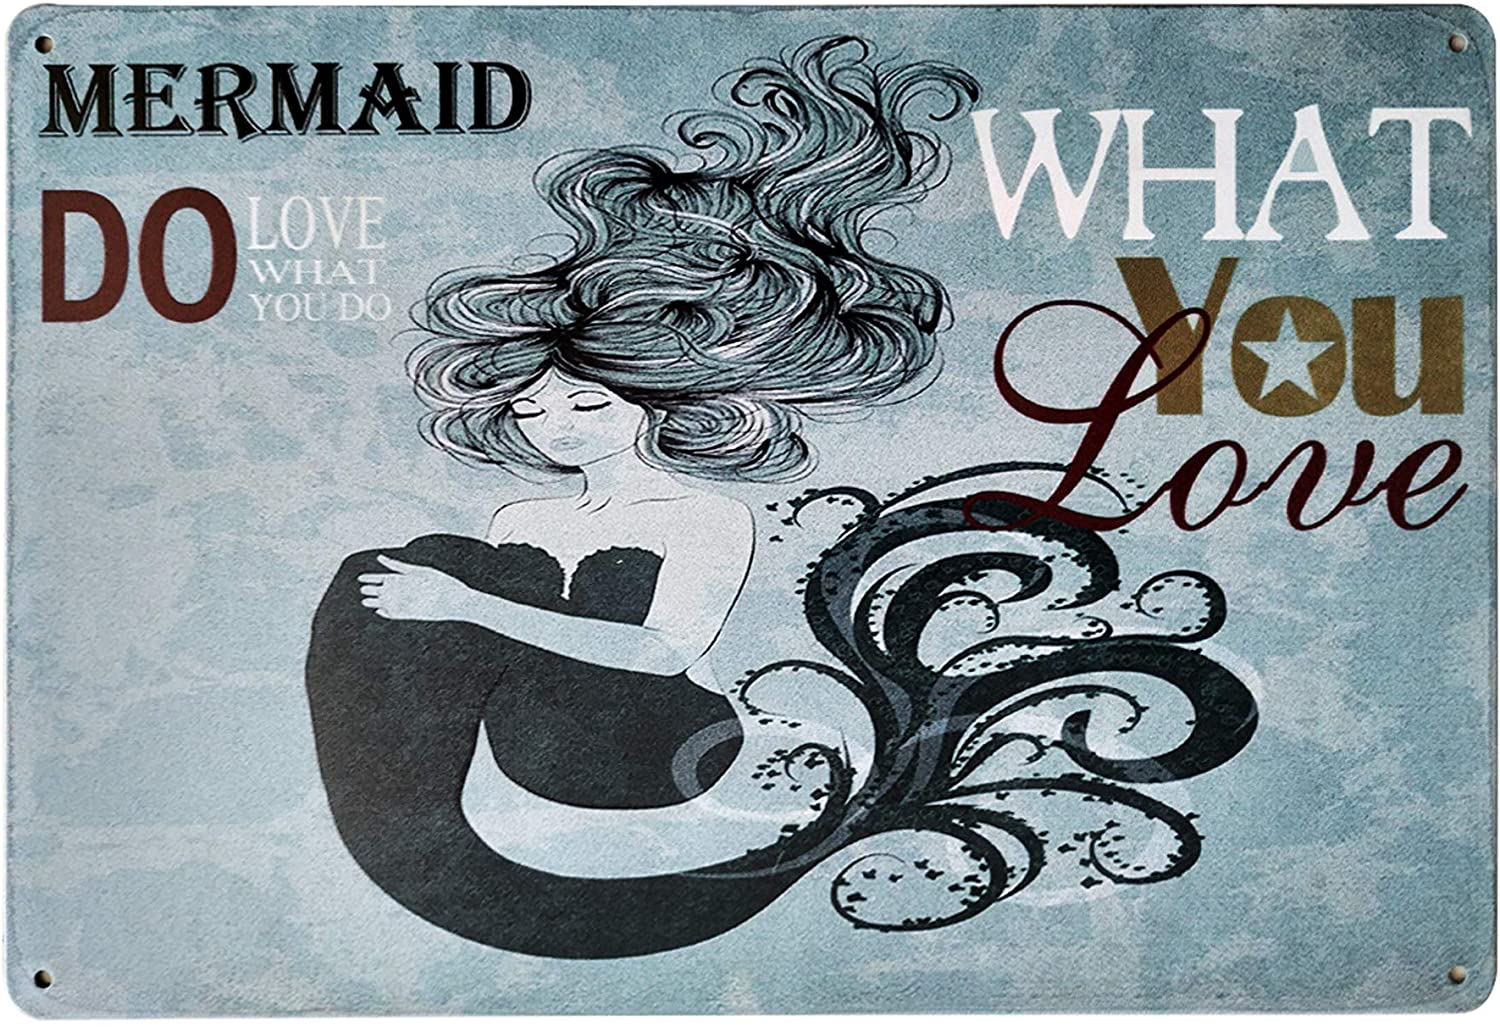 LASMINE Do What You Love Retro Mermaid Wishes Tin Sign Home Decor Bathroom Wall Metal Vintage Outdoor Garden Signs Kitchen Indoor Beach Decor8X12Inch